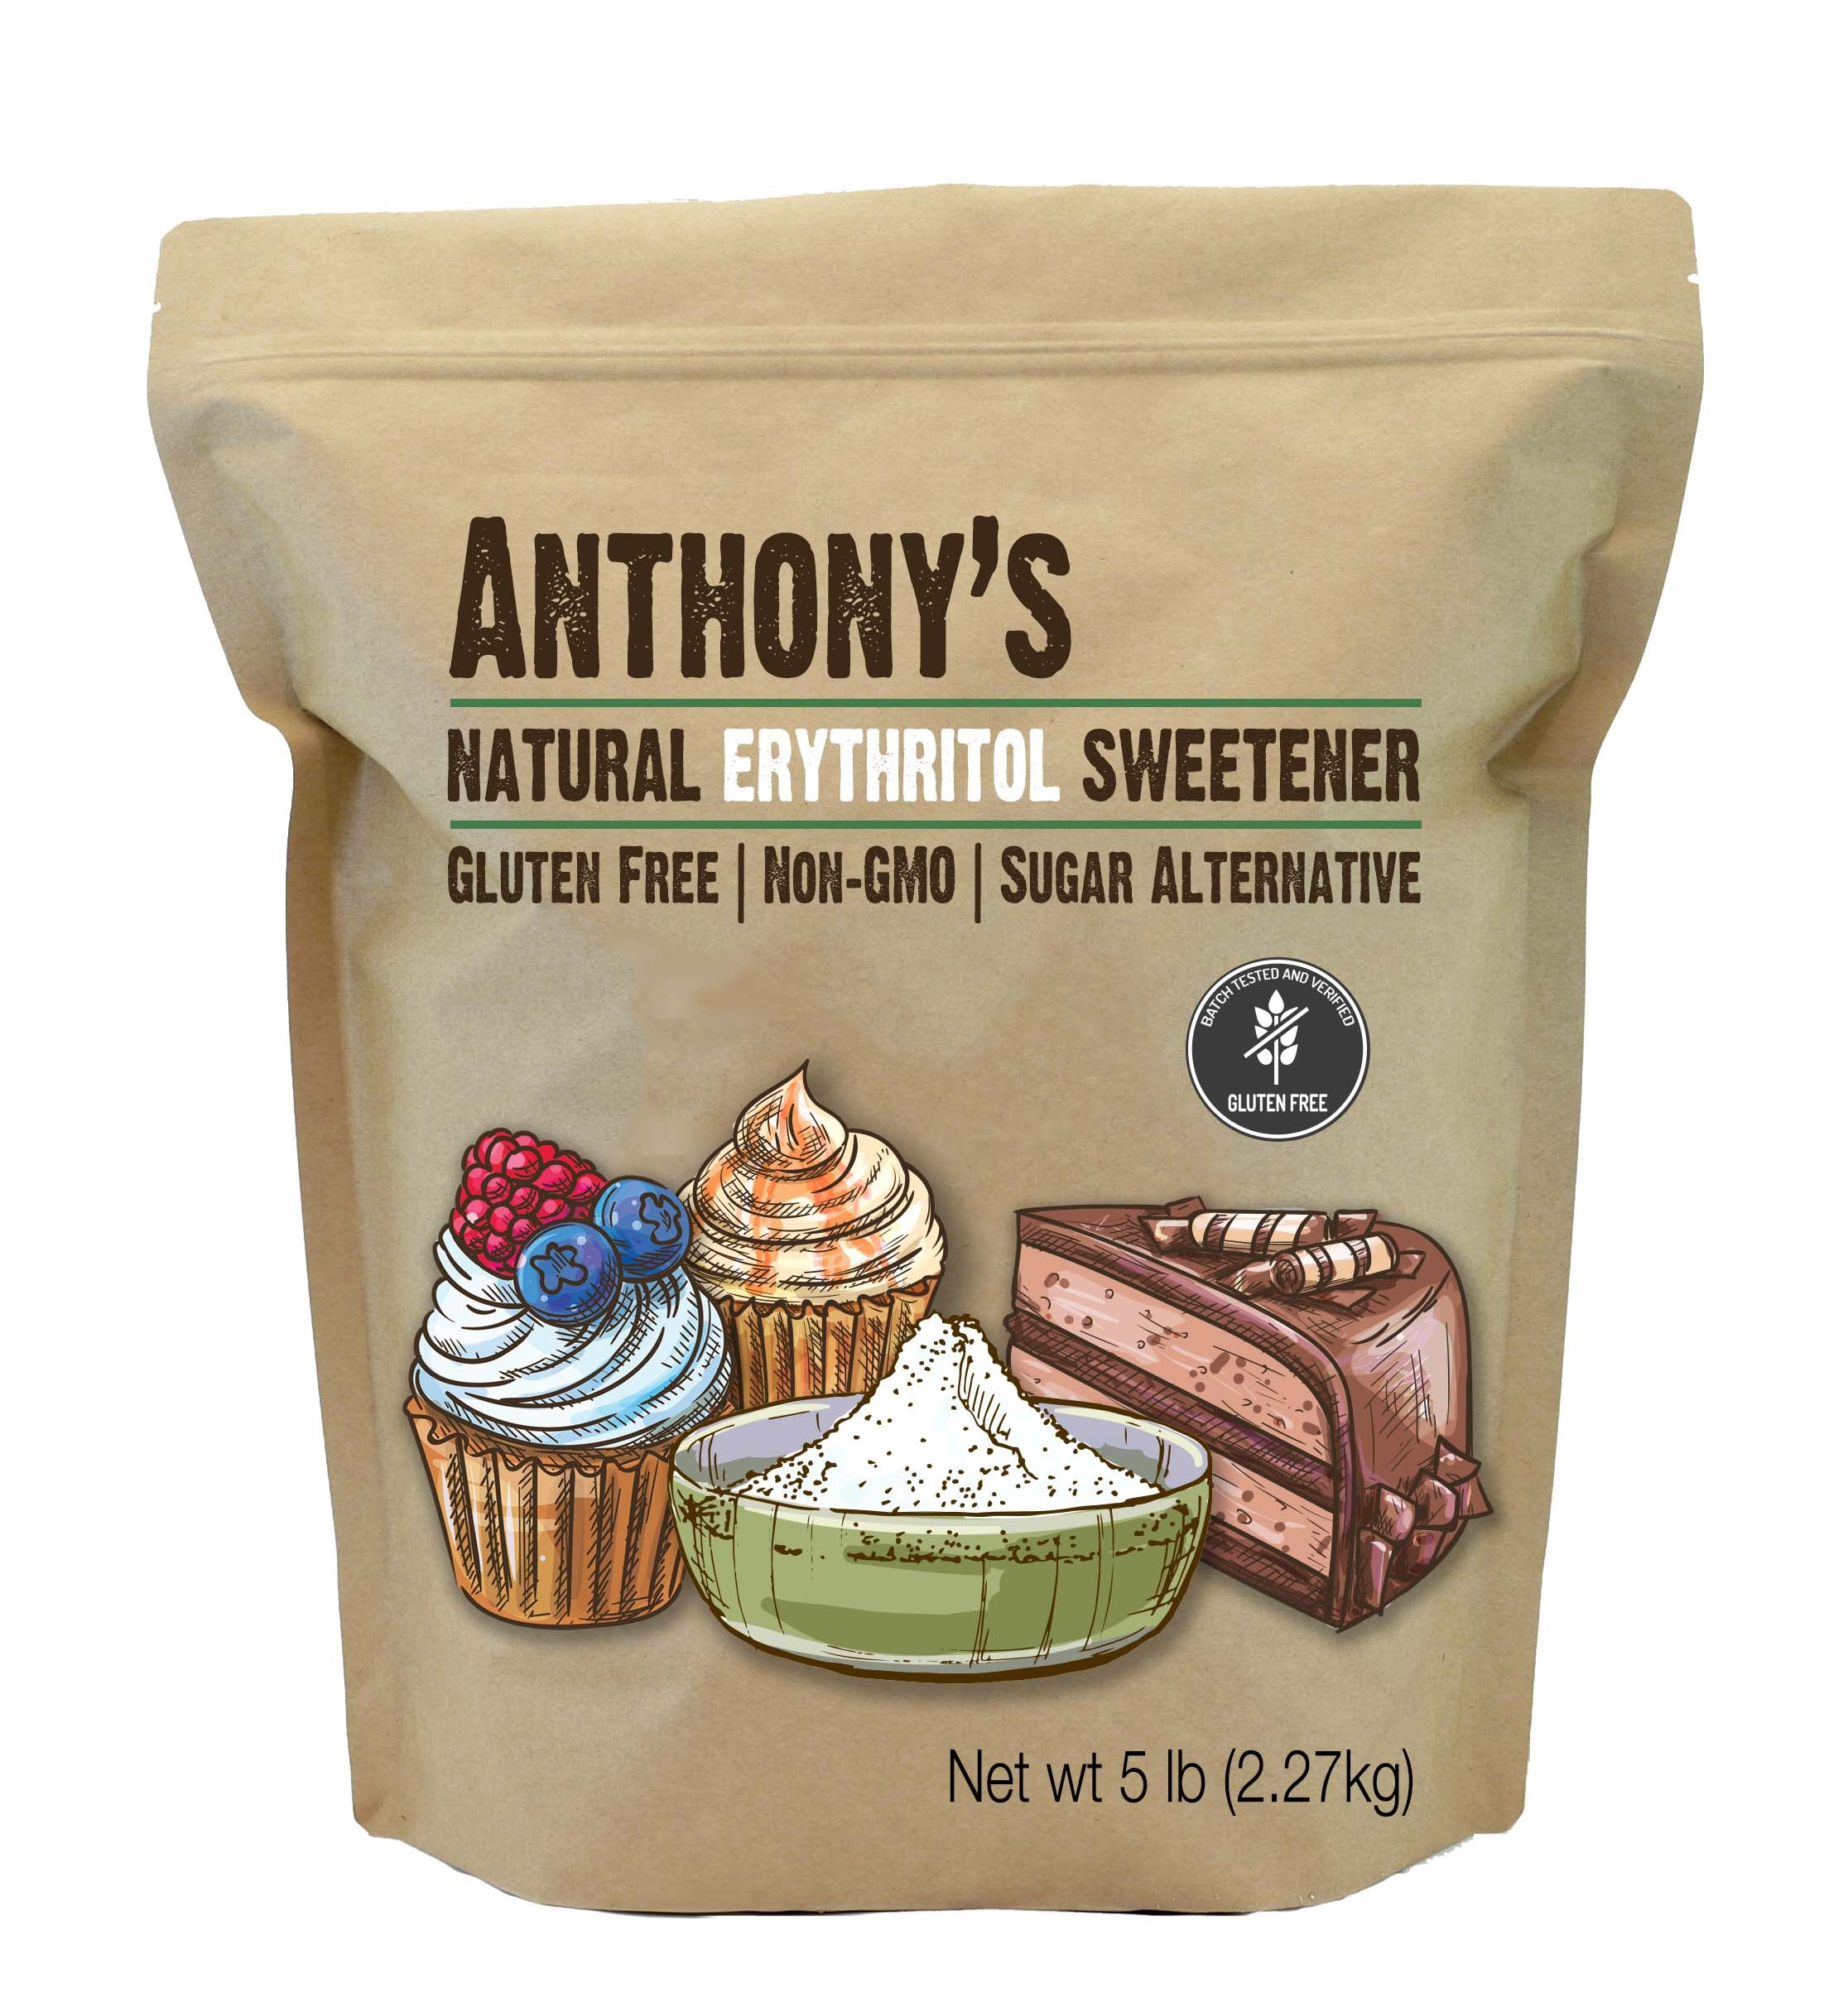 Erythritol Sweetener: Batch Tested & Verified Gluten-Free, Non-GMO, Natural Sweetener